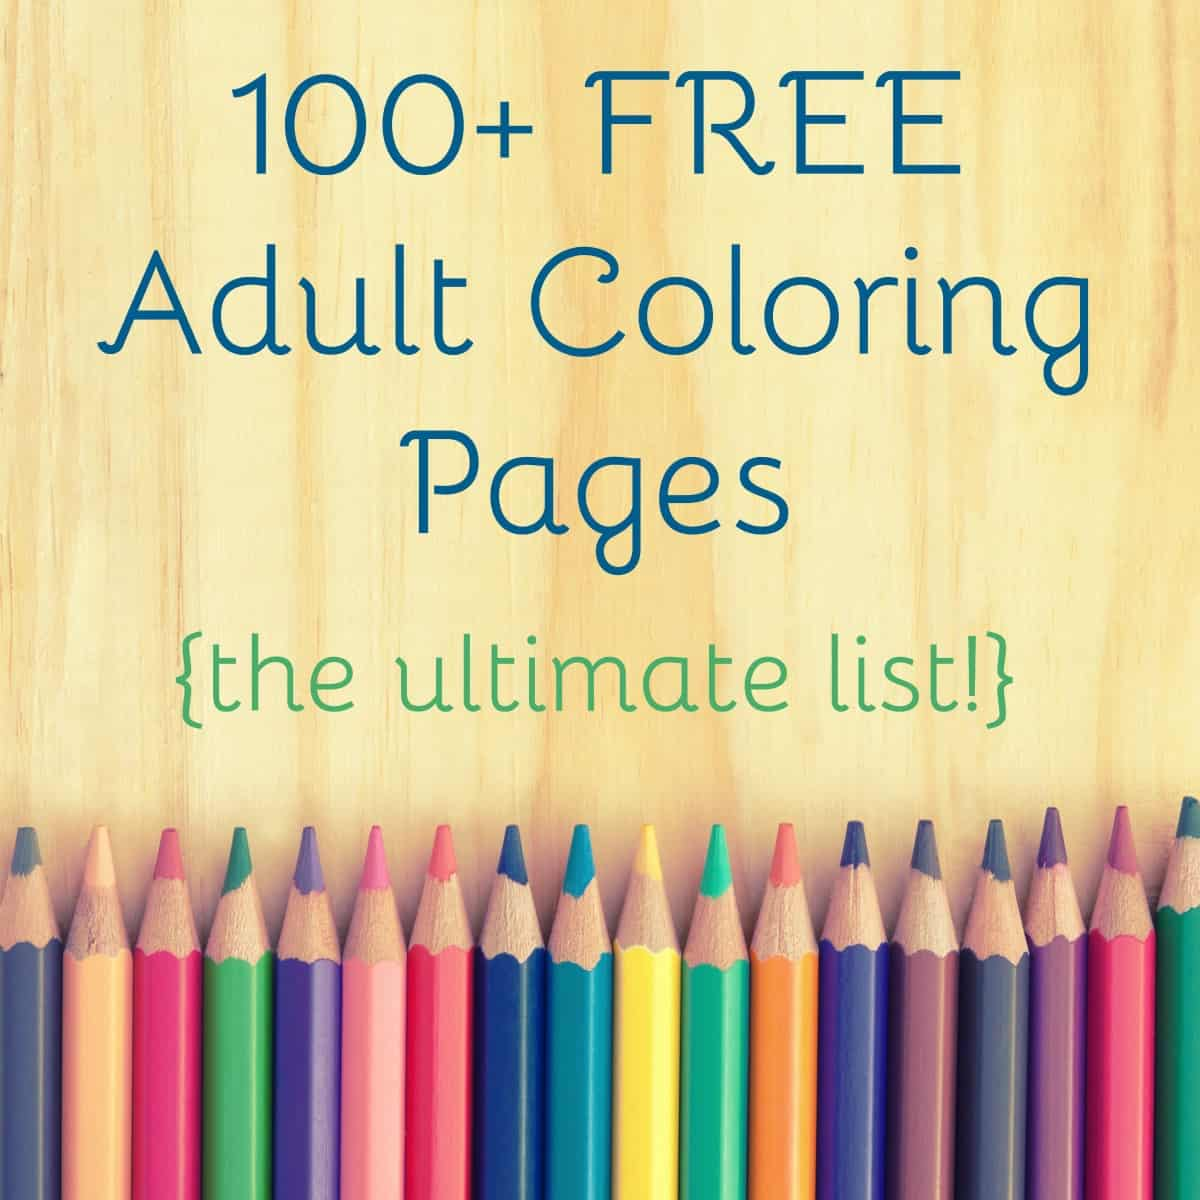 Get links to over 100 free coloring pages! You'll love these favorites including all occasion, nature, inspirational quotes, holidays, and more.